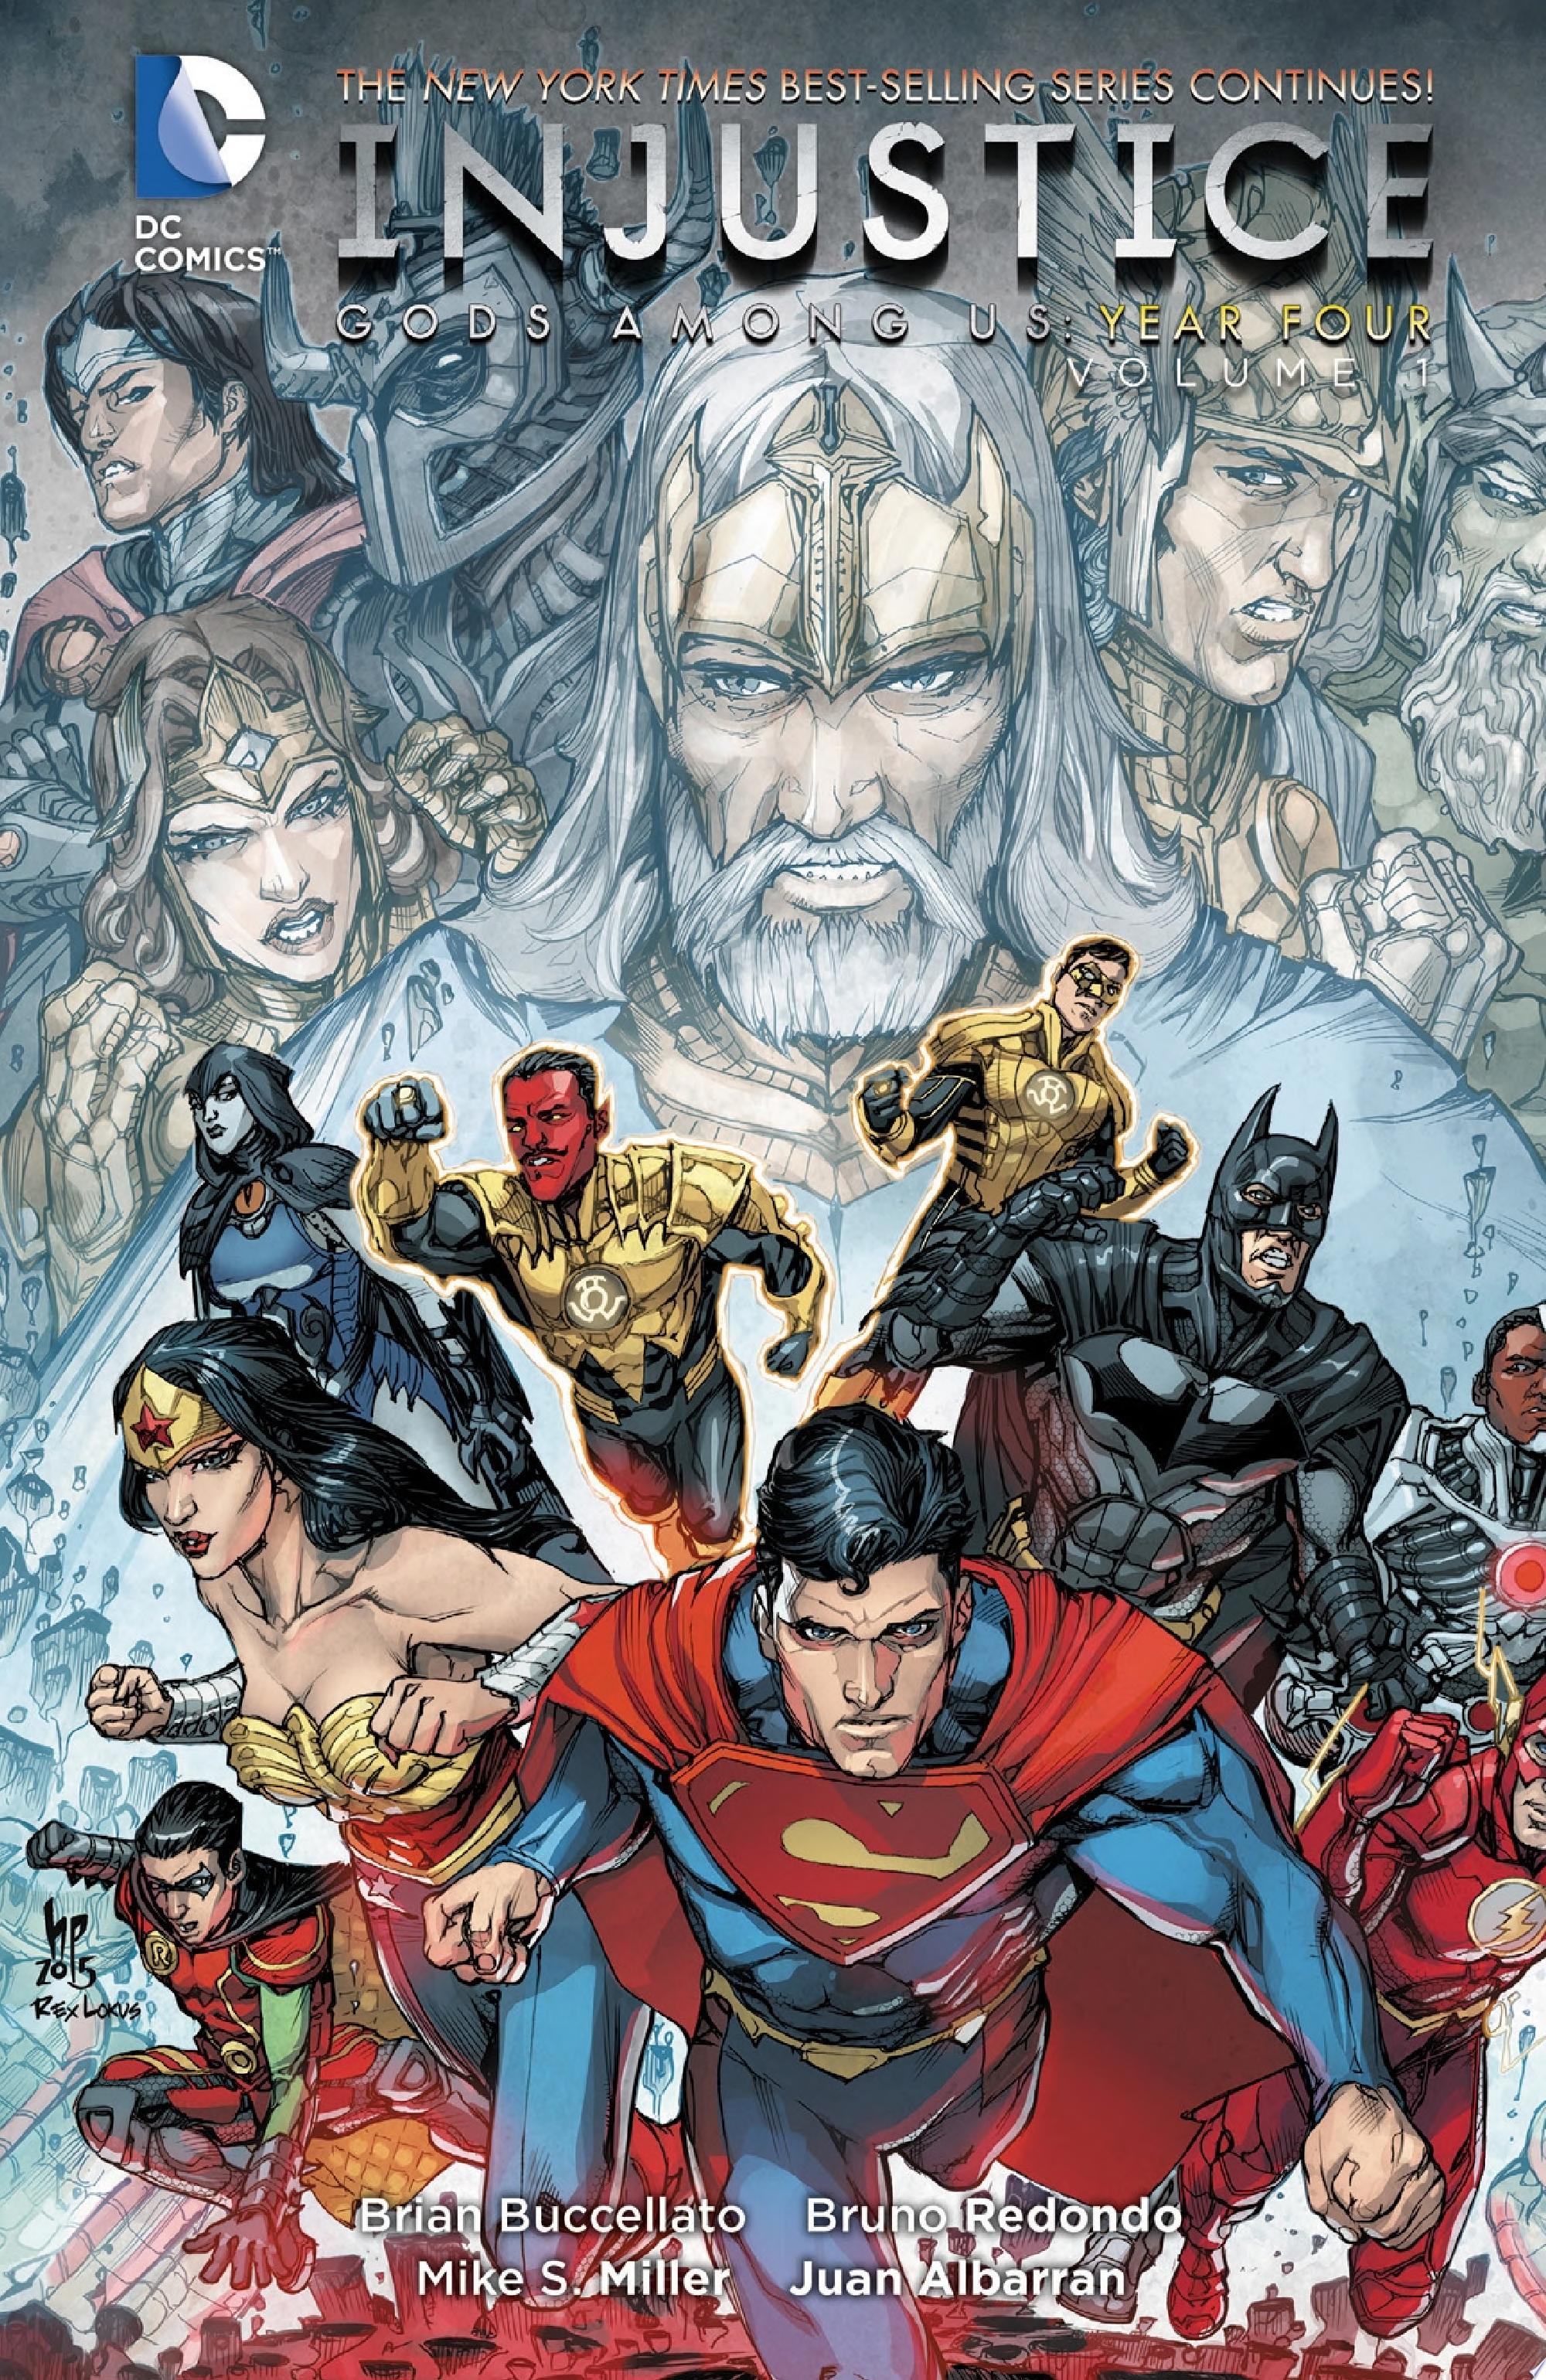 Injustice  Gods Among Us  Year Four Vol  1